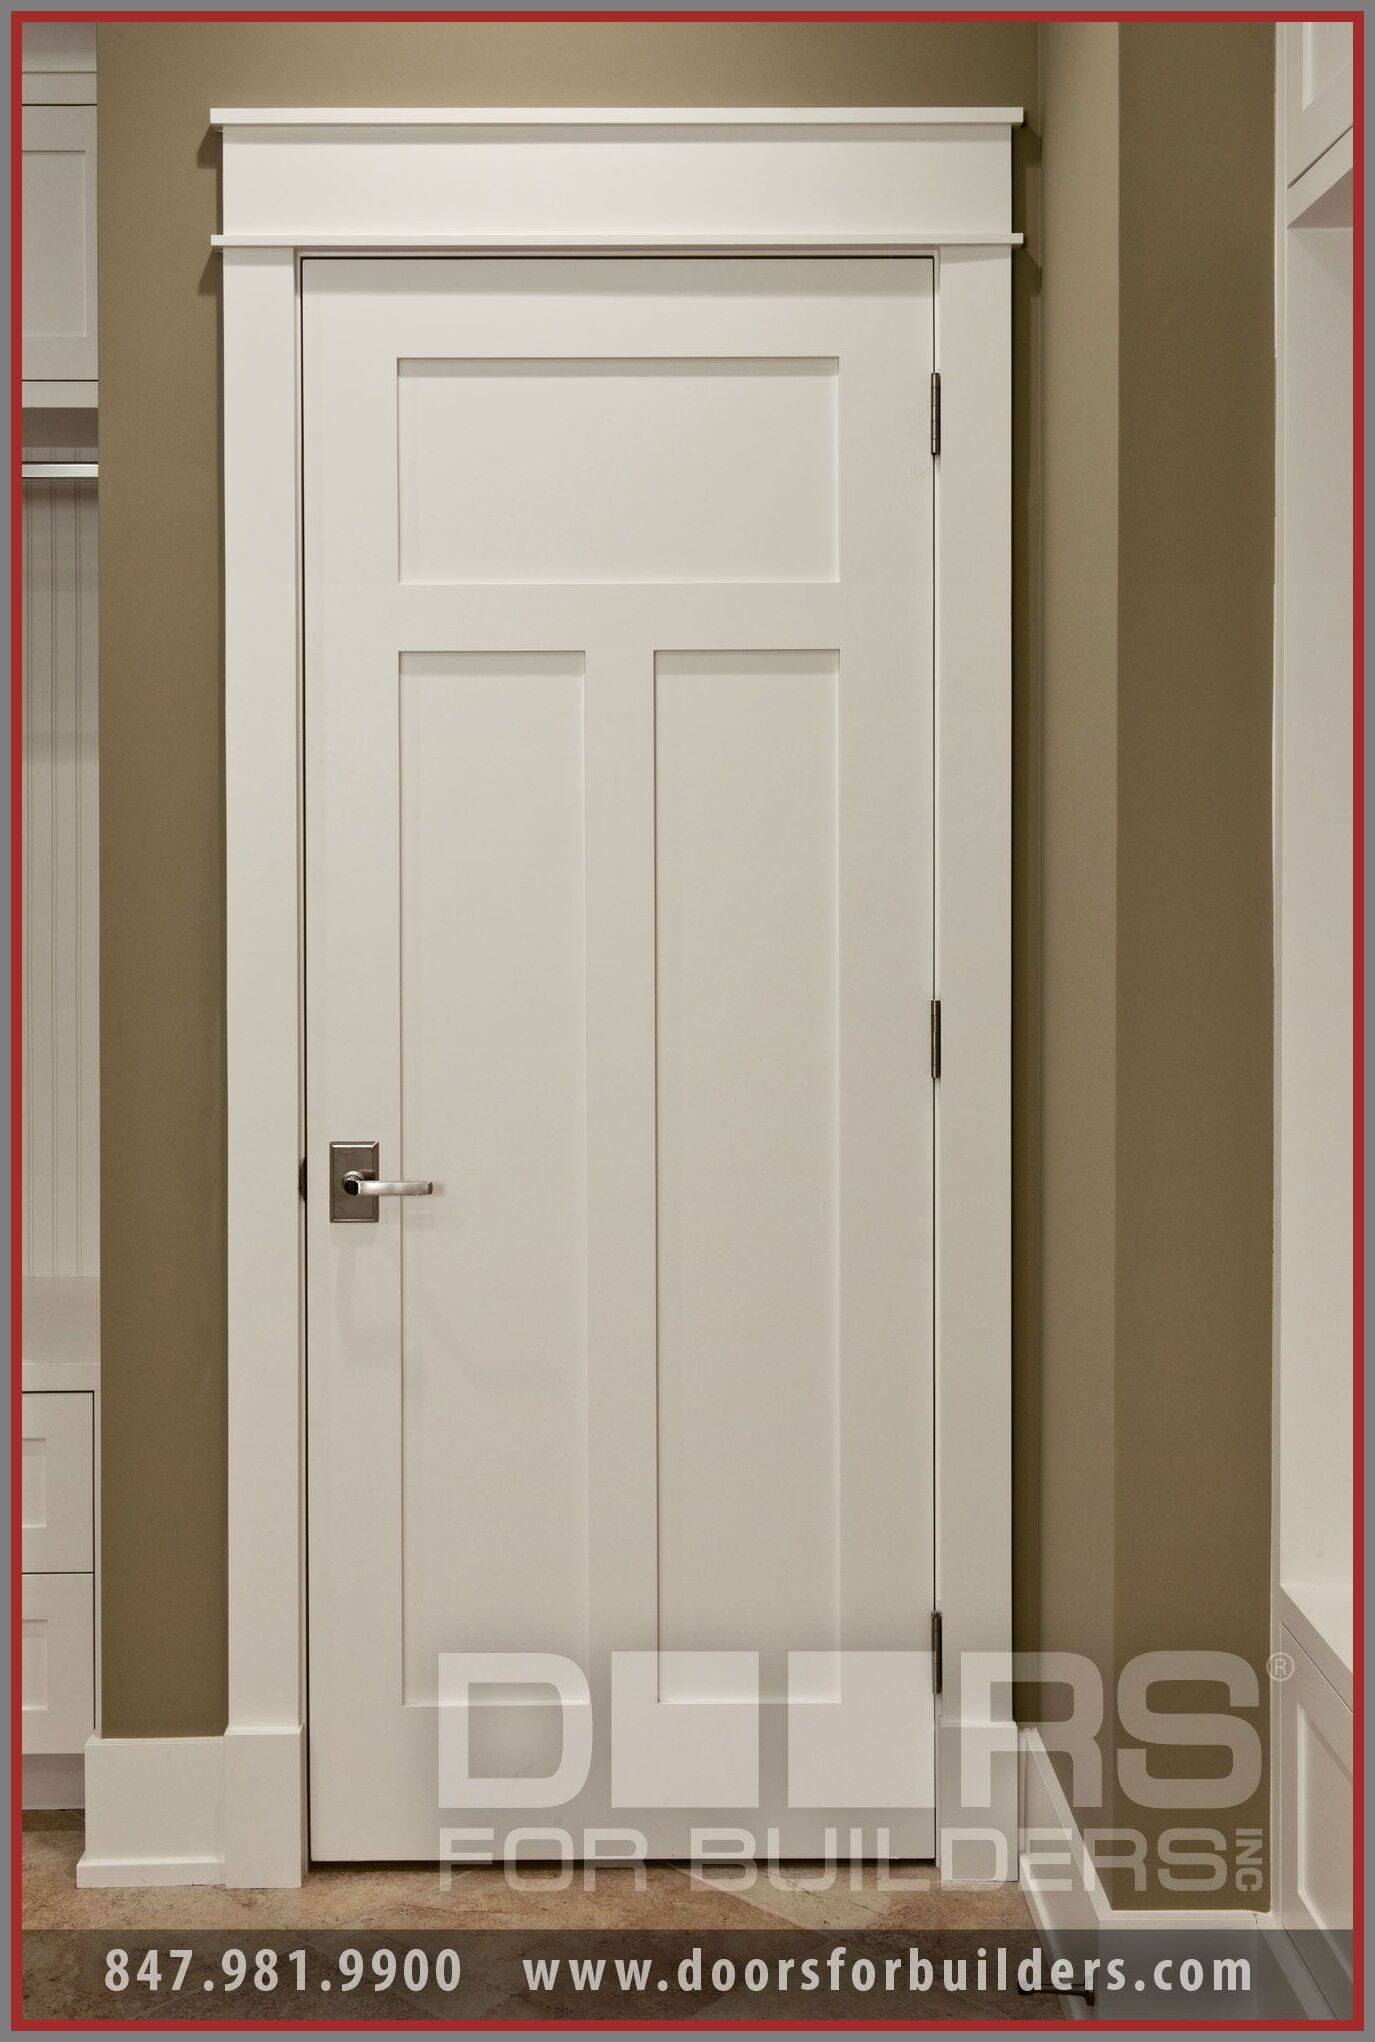 113 Reference Of Craftsman Style 3 Panel Interior Door In 2020 Doors Interior Wood Doors Interior Farmhouse Doors